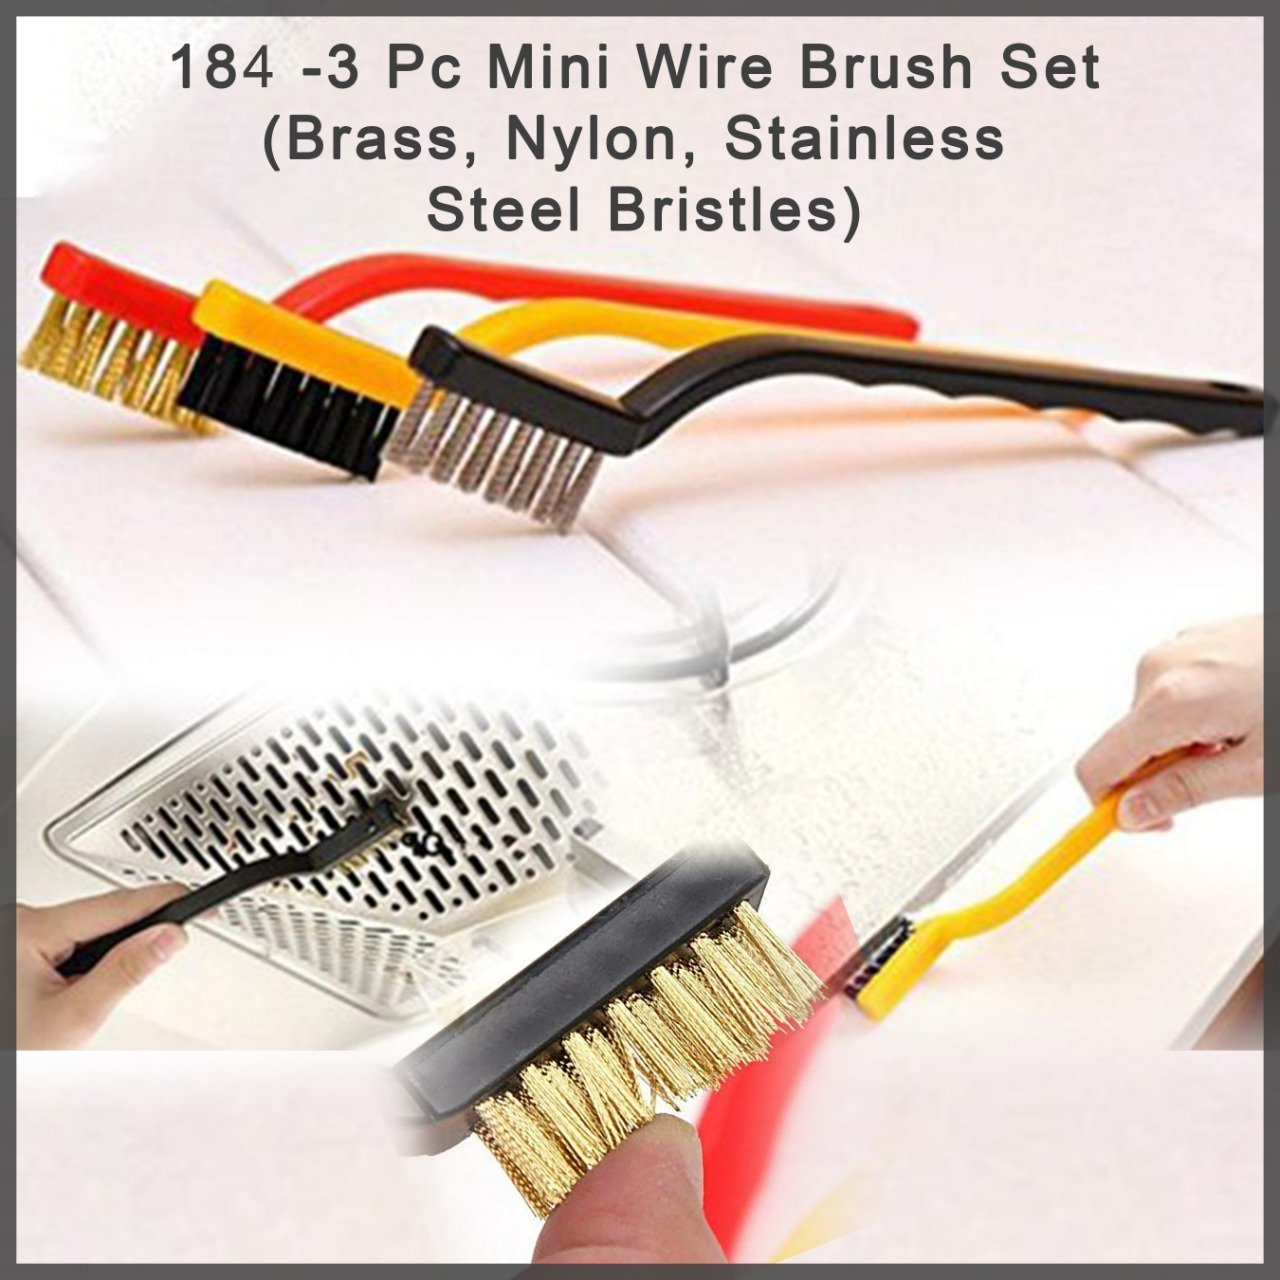 184 -3 Pc Mini Wire Brush Set (Brass, Nylon, Stainless Steel Bristles)